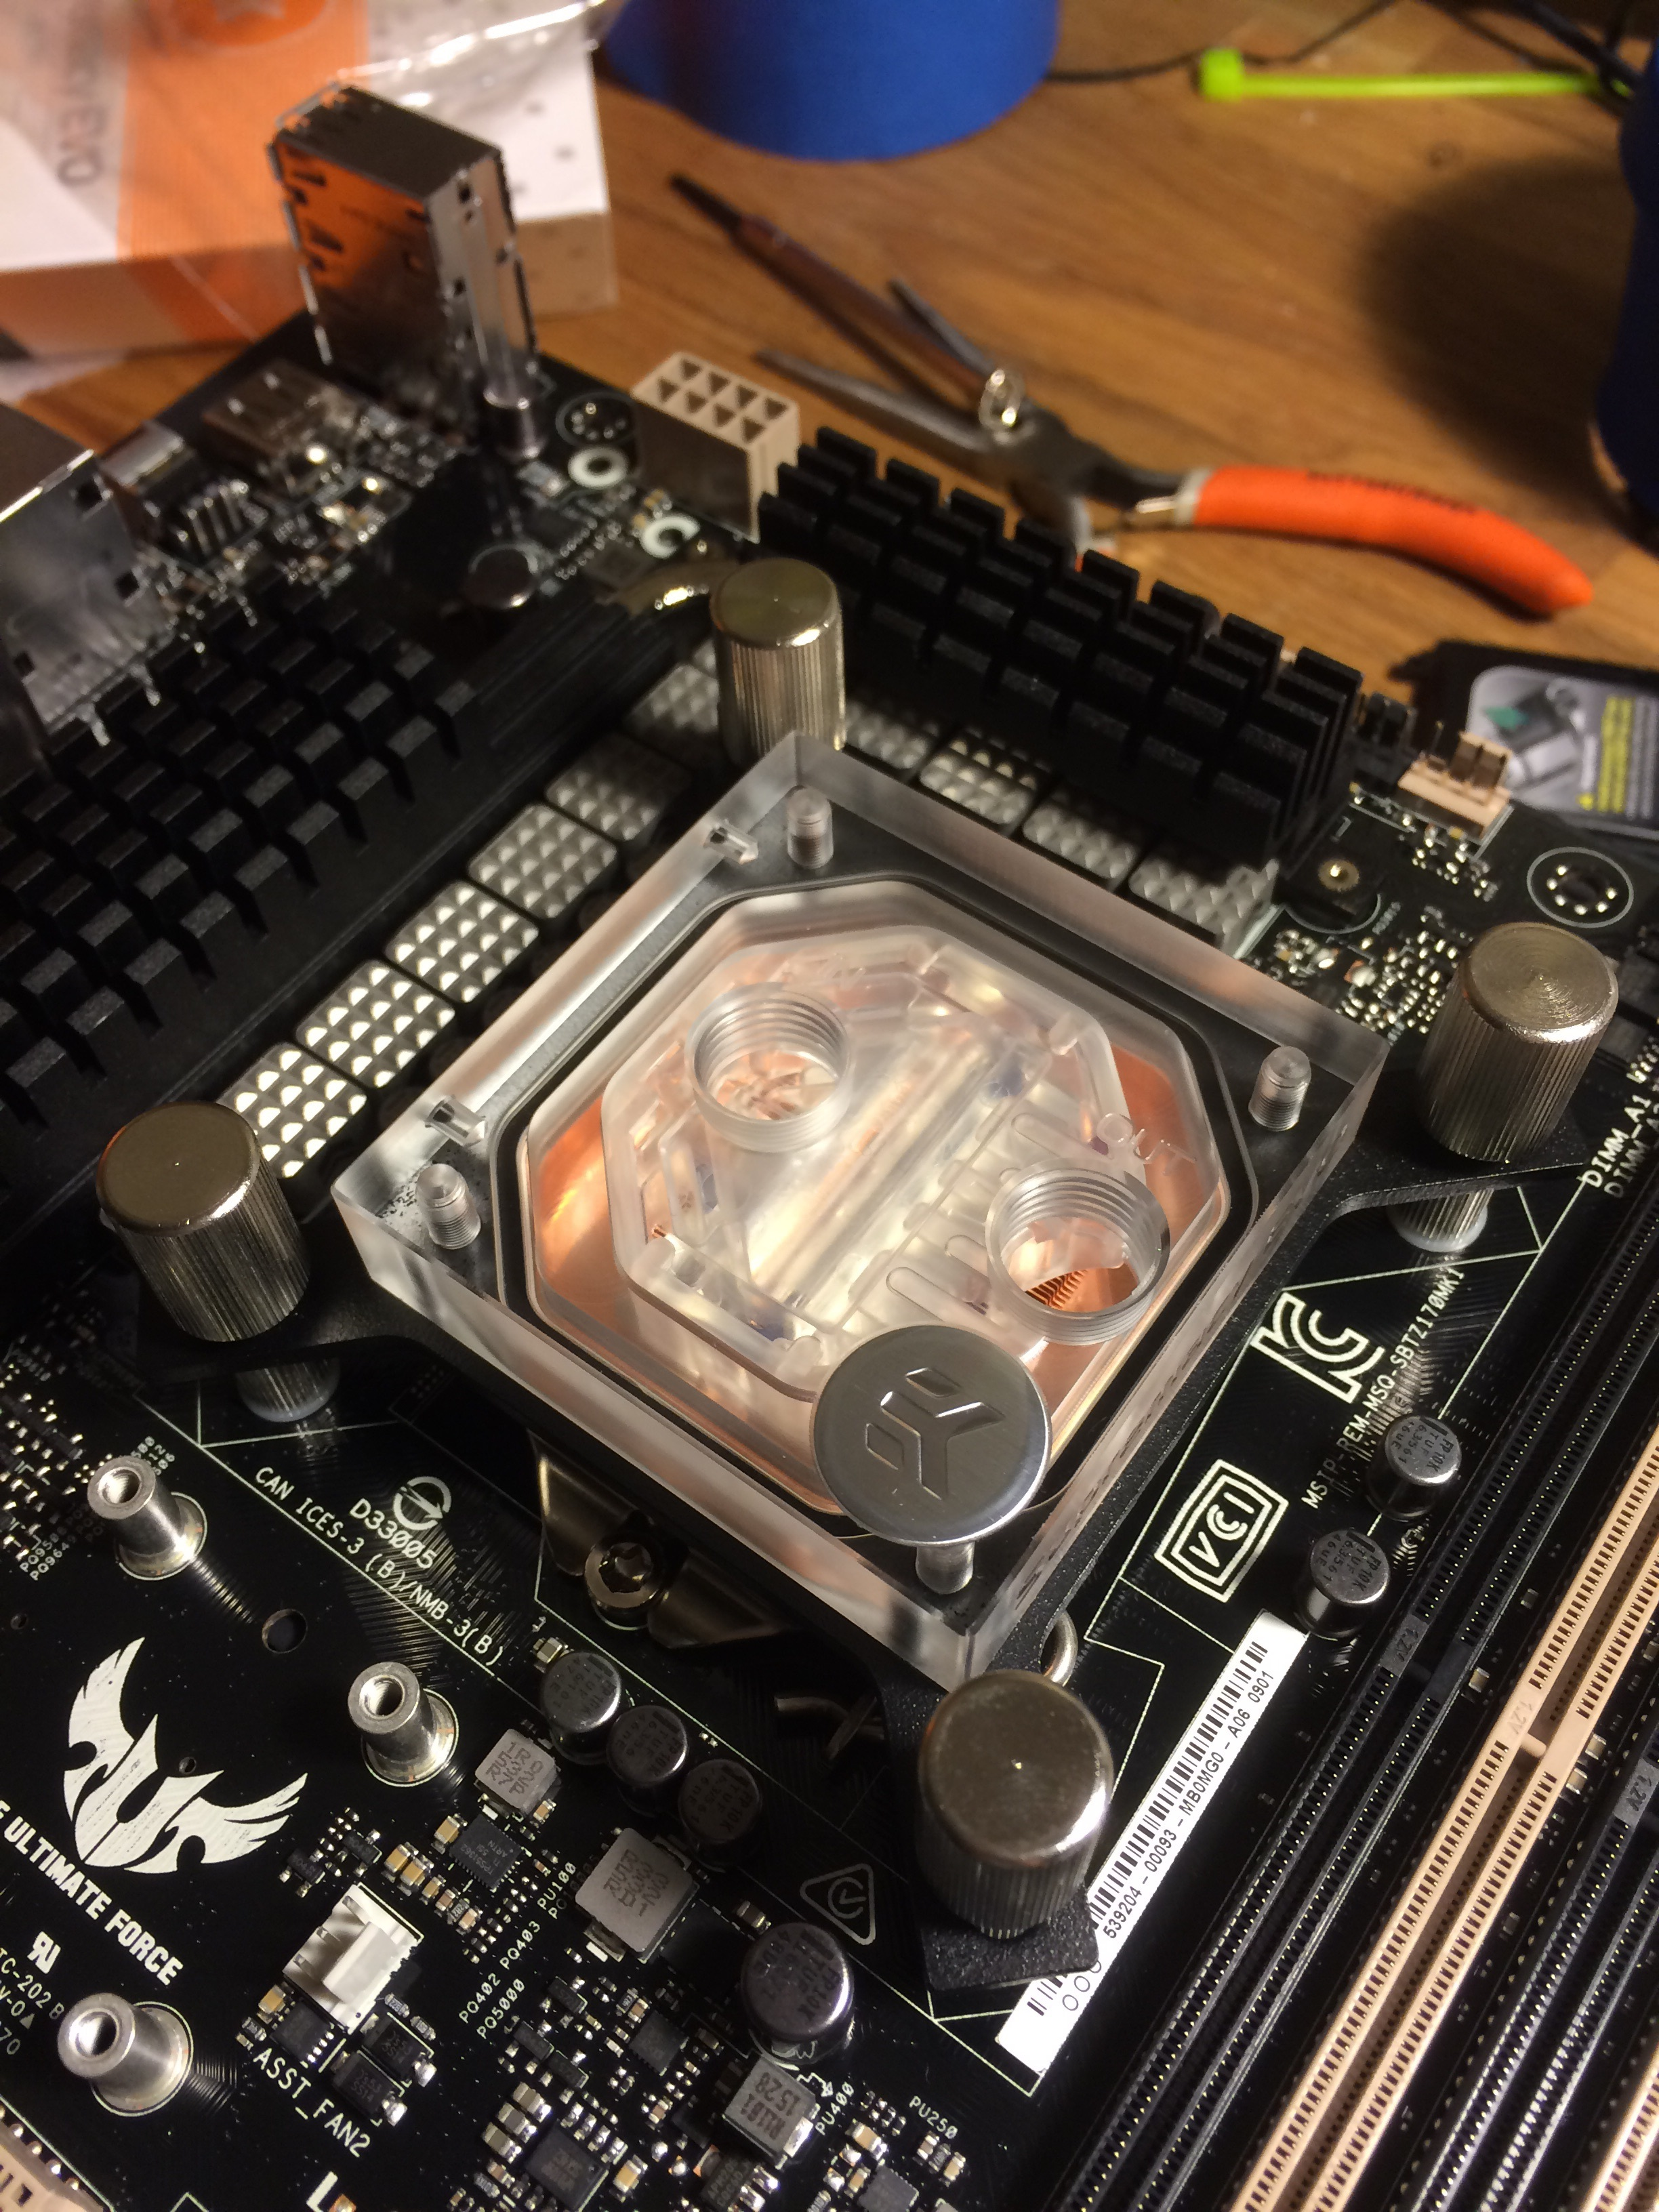 Thank you EK for making such a gorgeous CPU block. The plexi will showcase the fancy fluid that's in the mail.